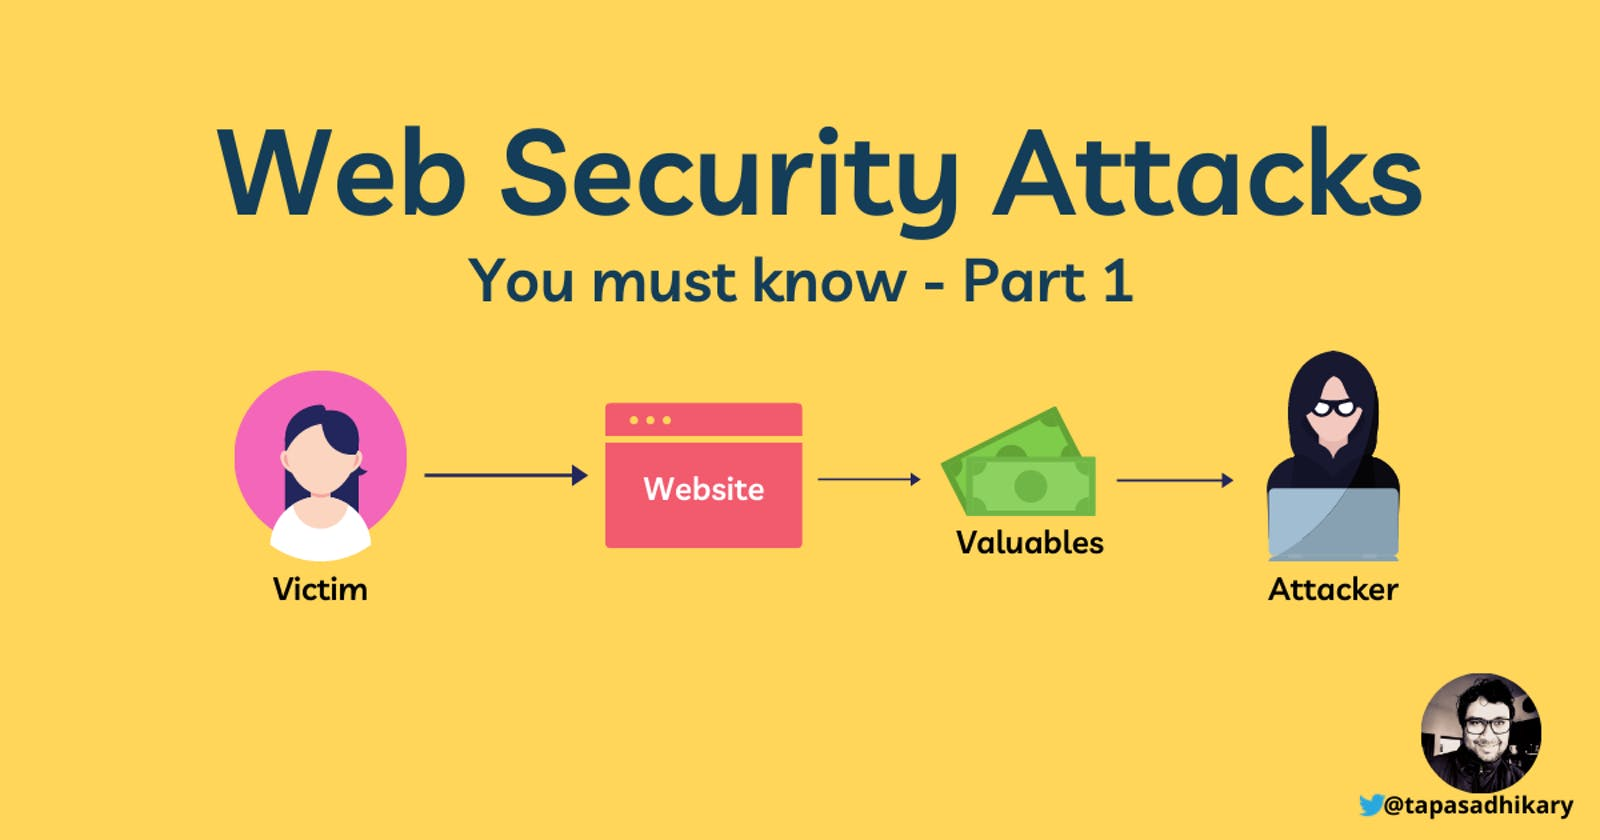 Web security attacks you must know - Part 1